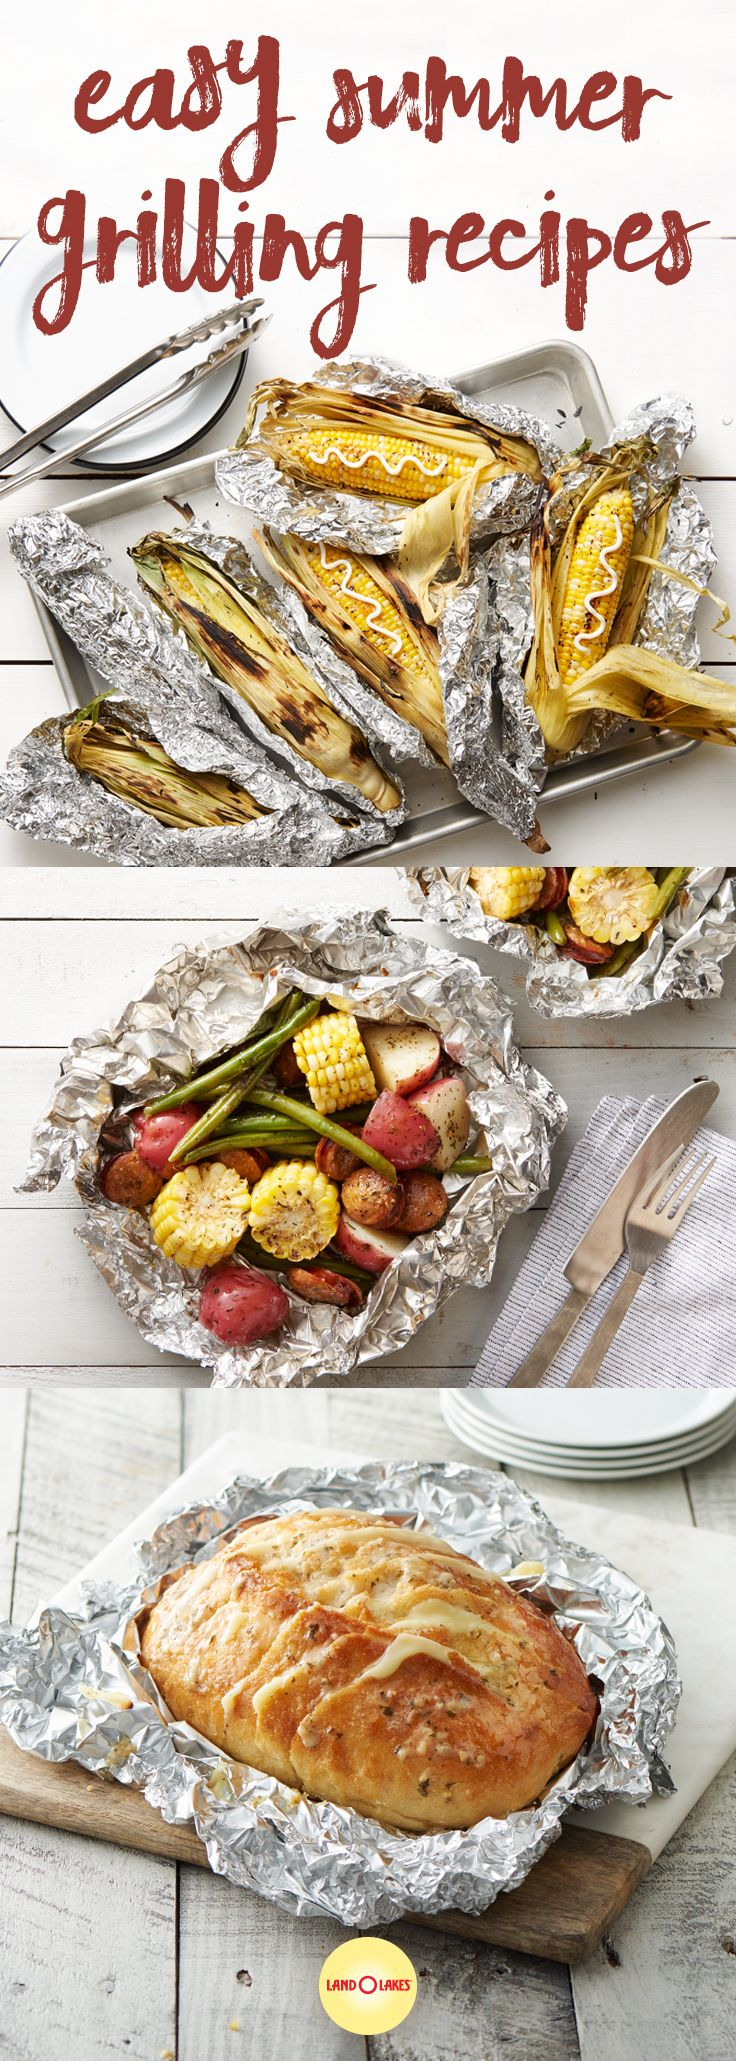 Grilling Recipes Recipes Foil Packet Dinners Cooking